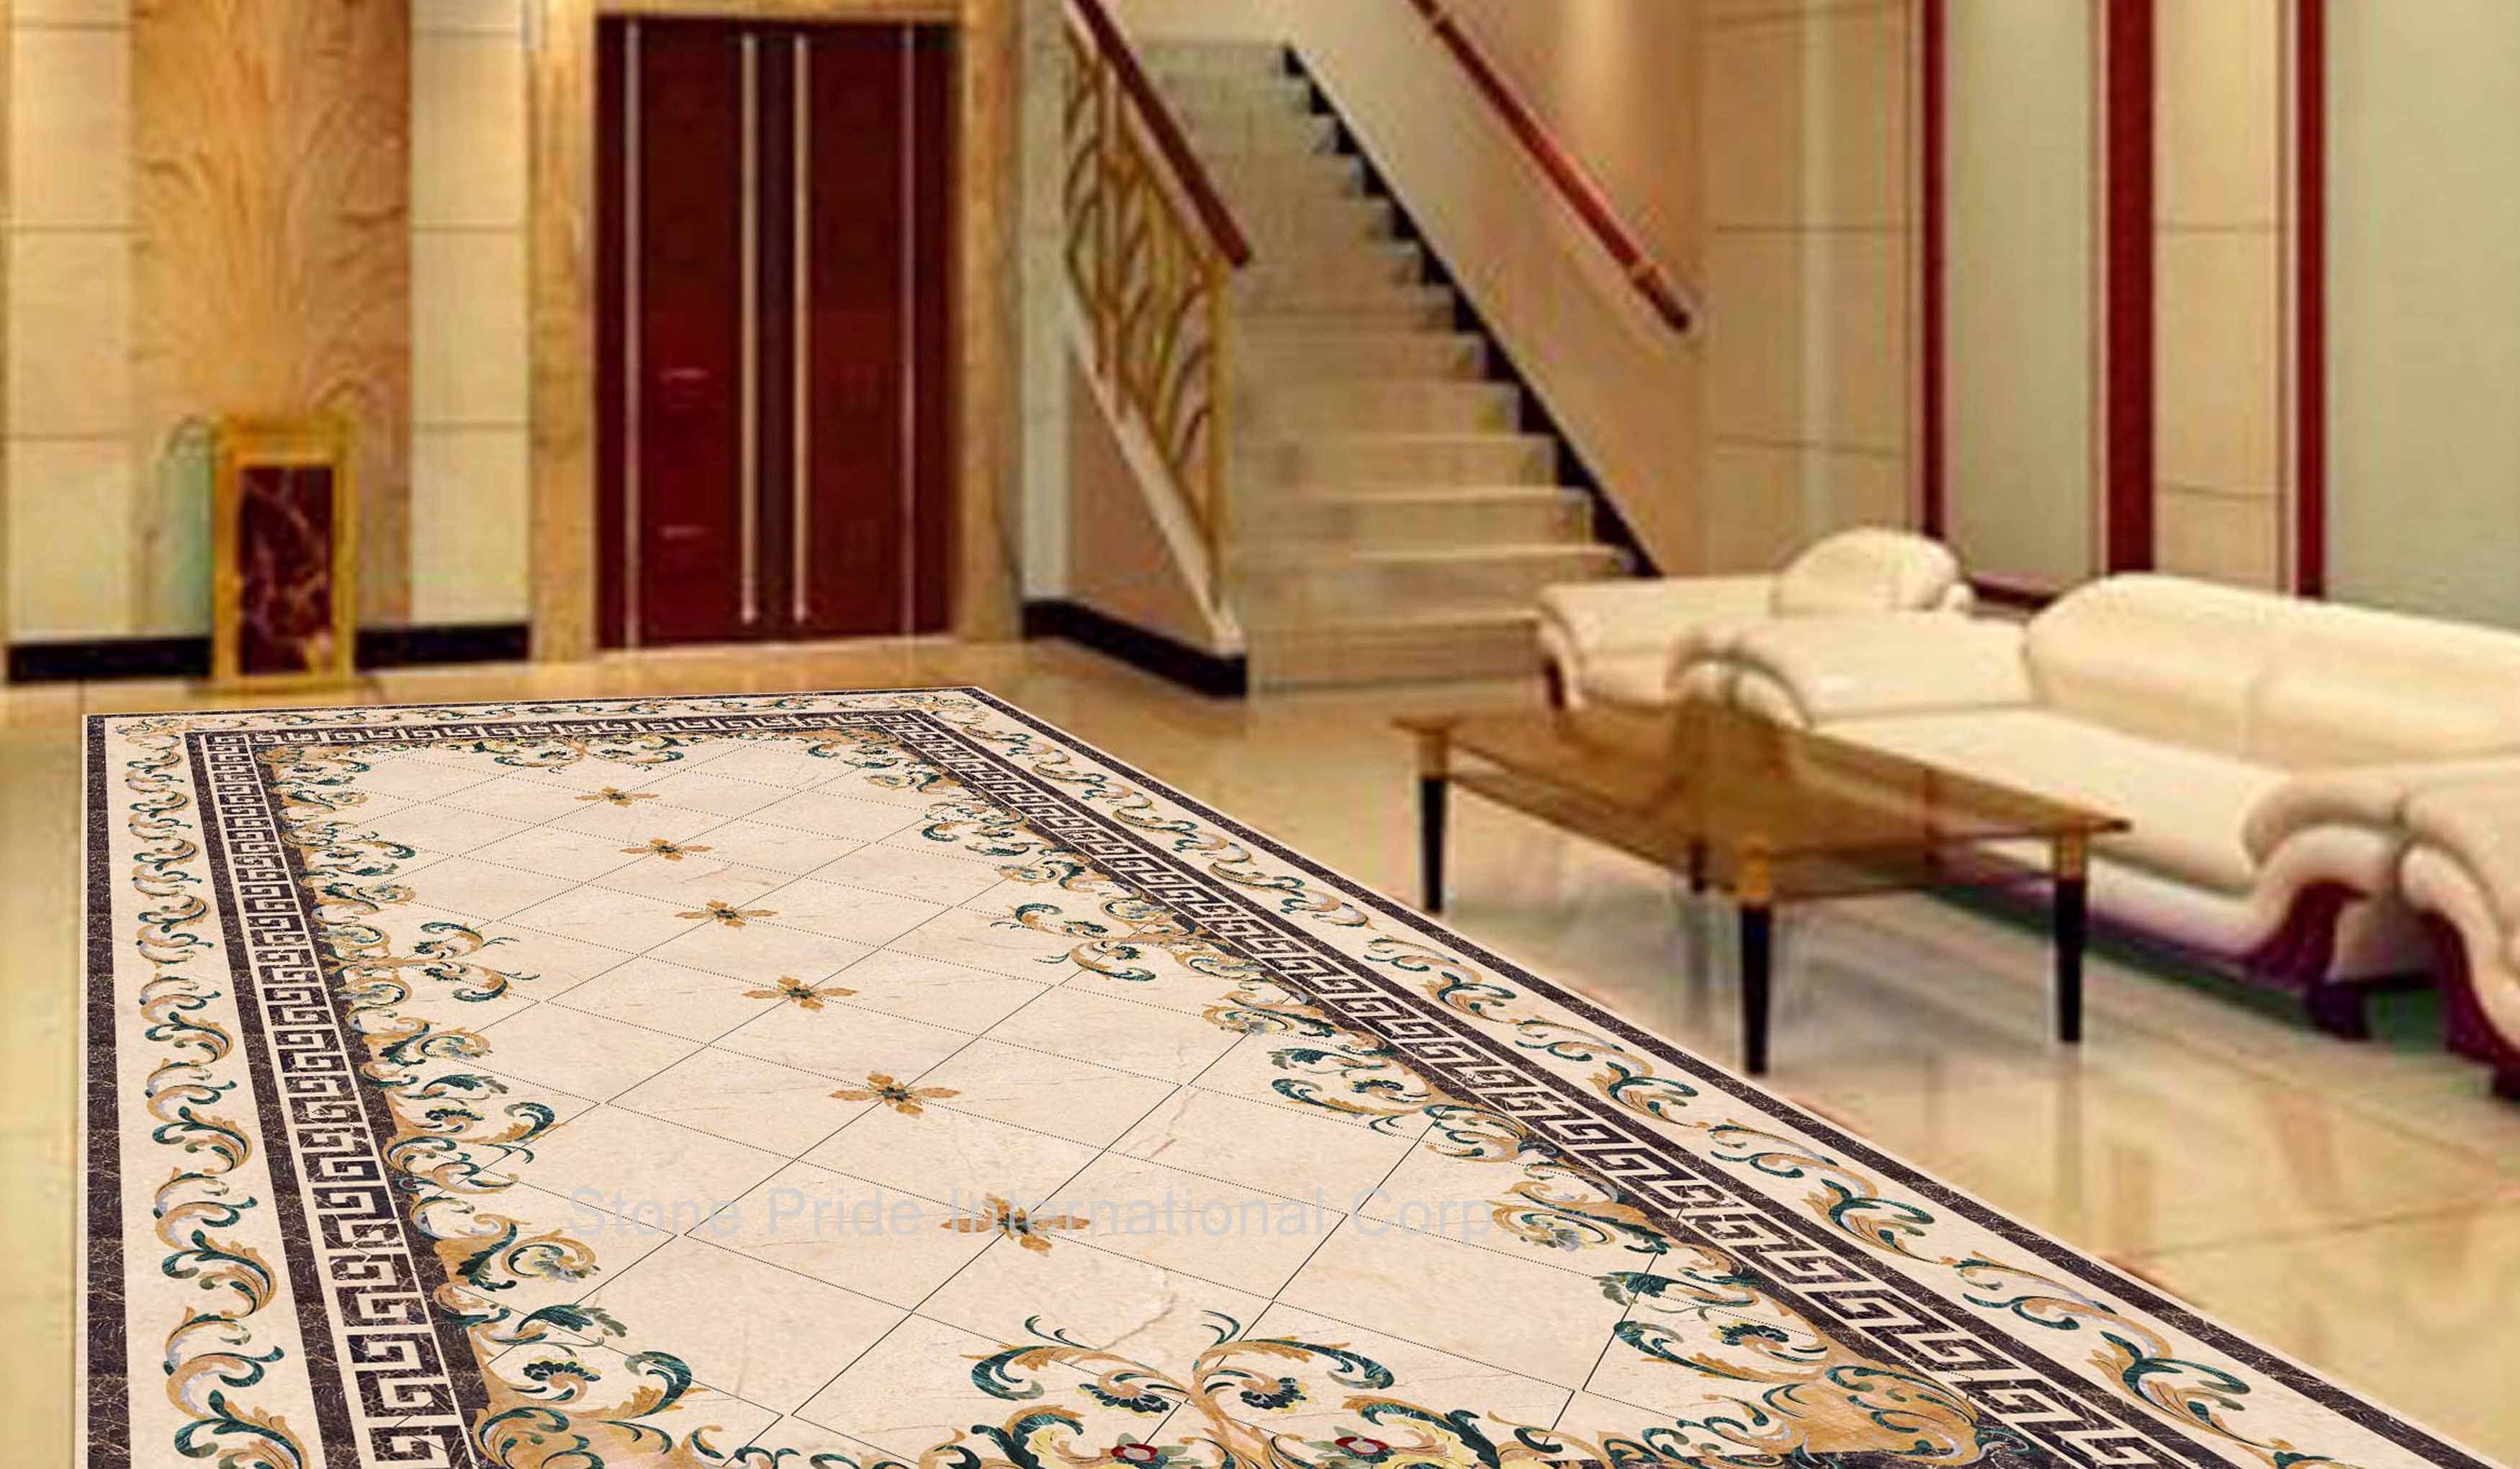 Floor design suitable for entryway design or living room x 2040 px. We are manufacturer  exporters and suppliers in India  you can